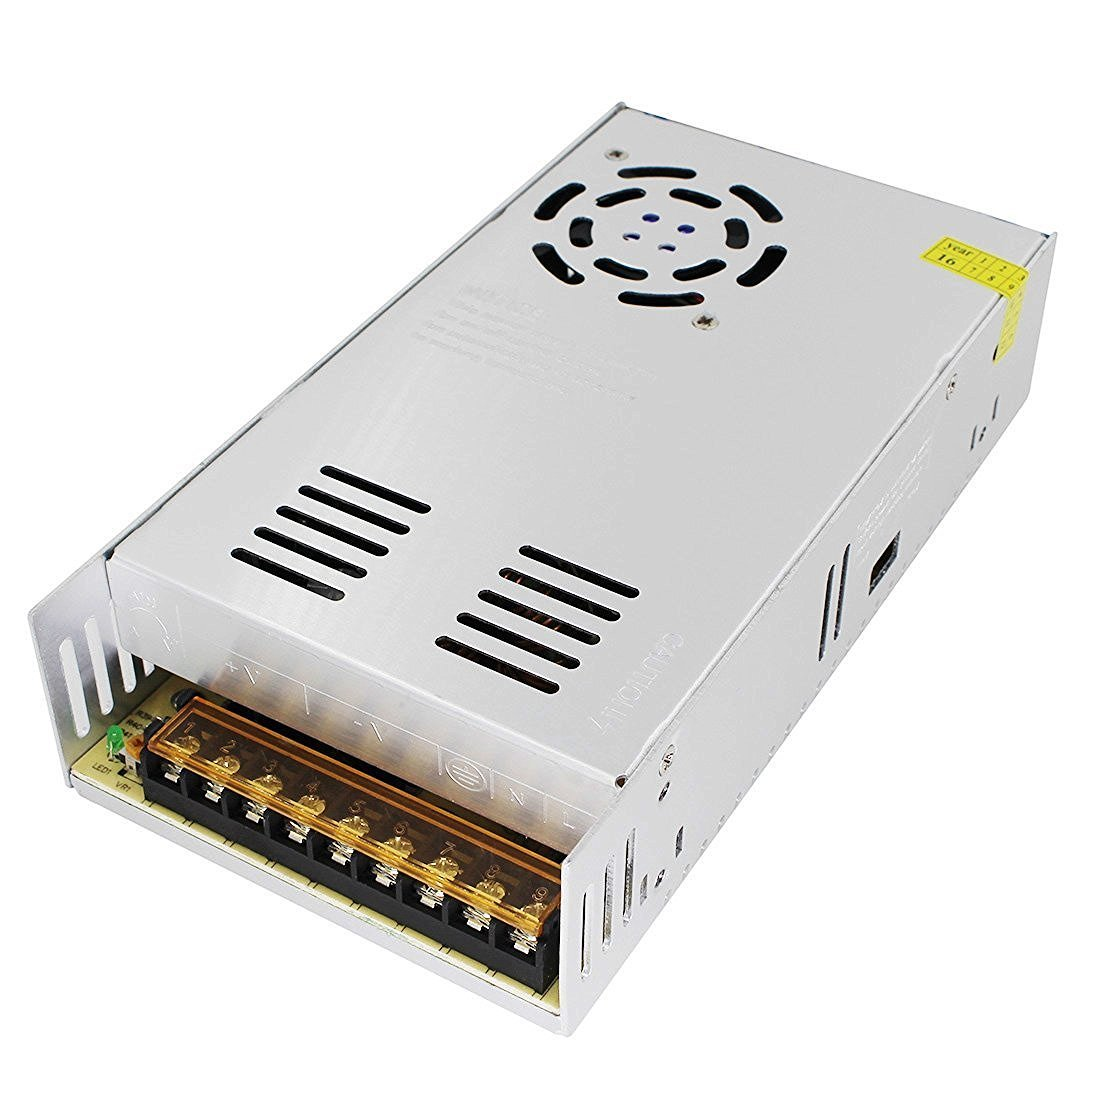 LTROP 12V 30A DC Power Supply, 360W Universal Regulated Switching Power Supply for LED Strip Light, CCTV, Radio, Computer Project